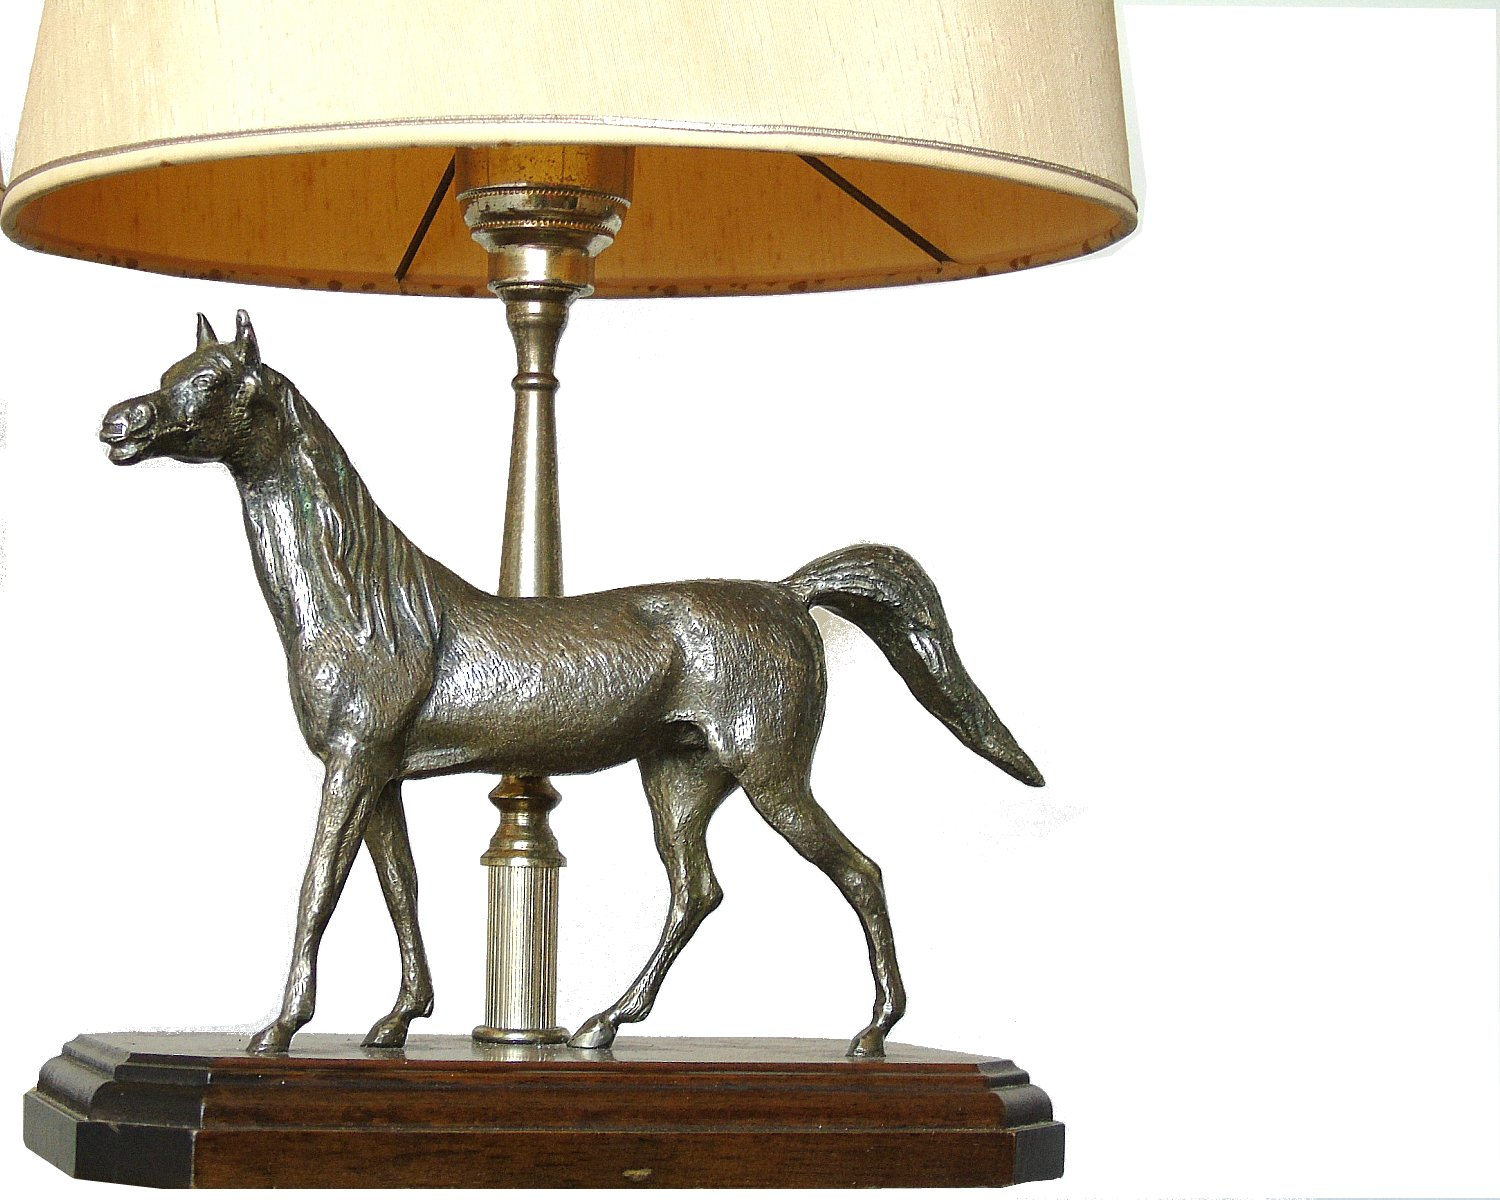 Vintage french sculptural horse table lamps 1970s set of 2 for 97500 aloadofball Gallery